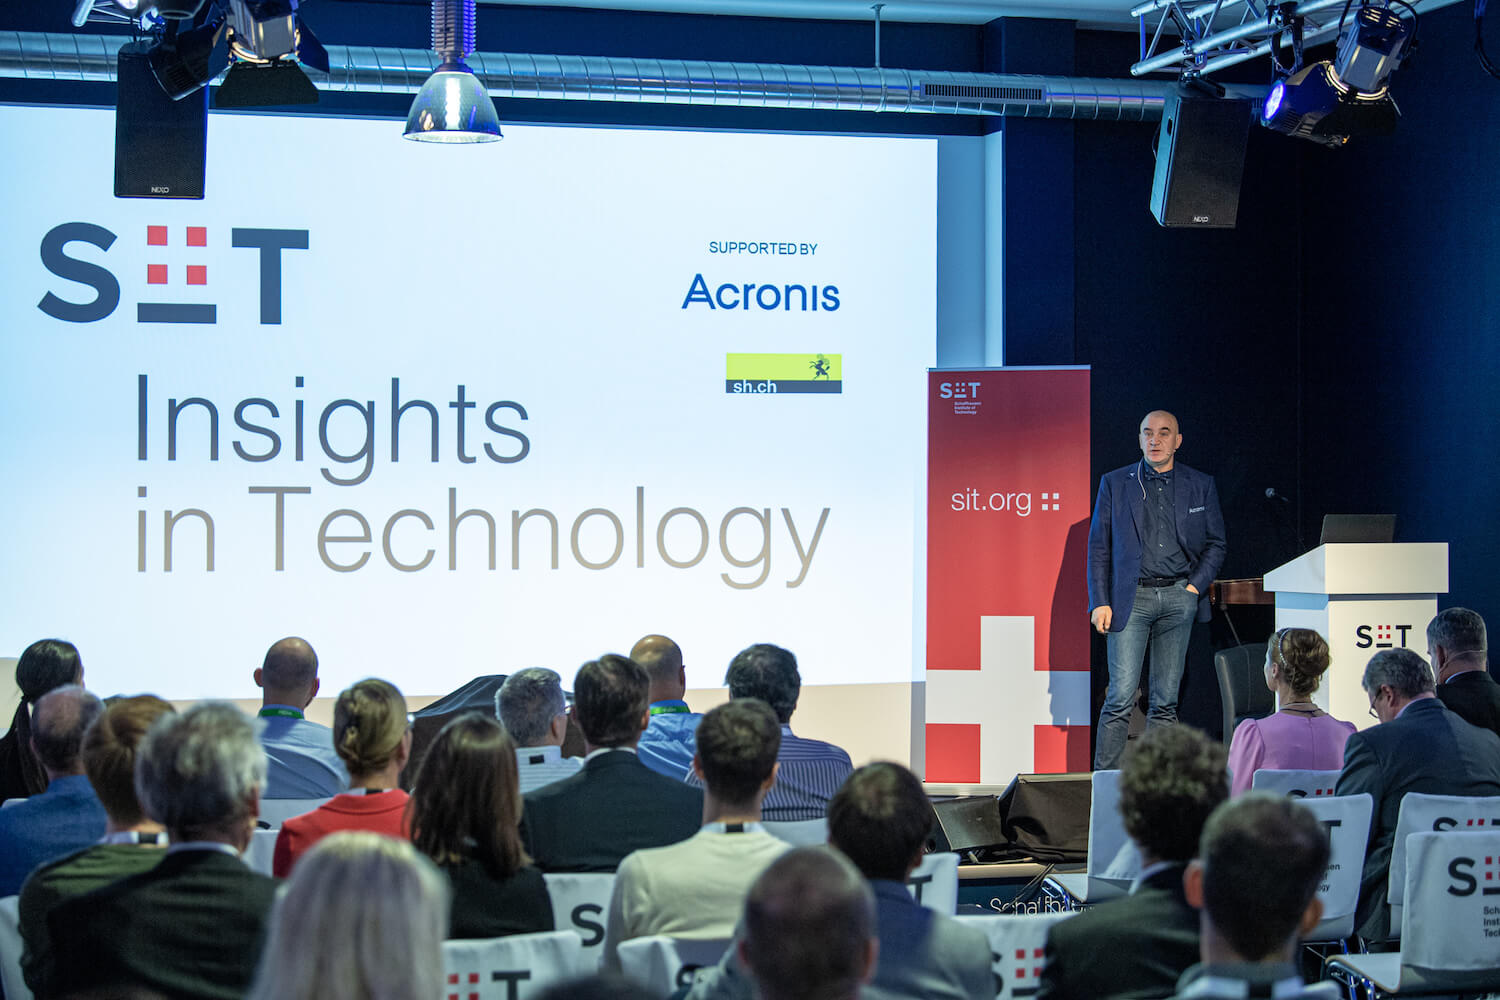 insights_in_technology_speakers